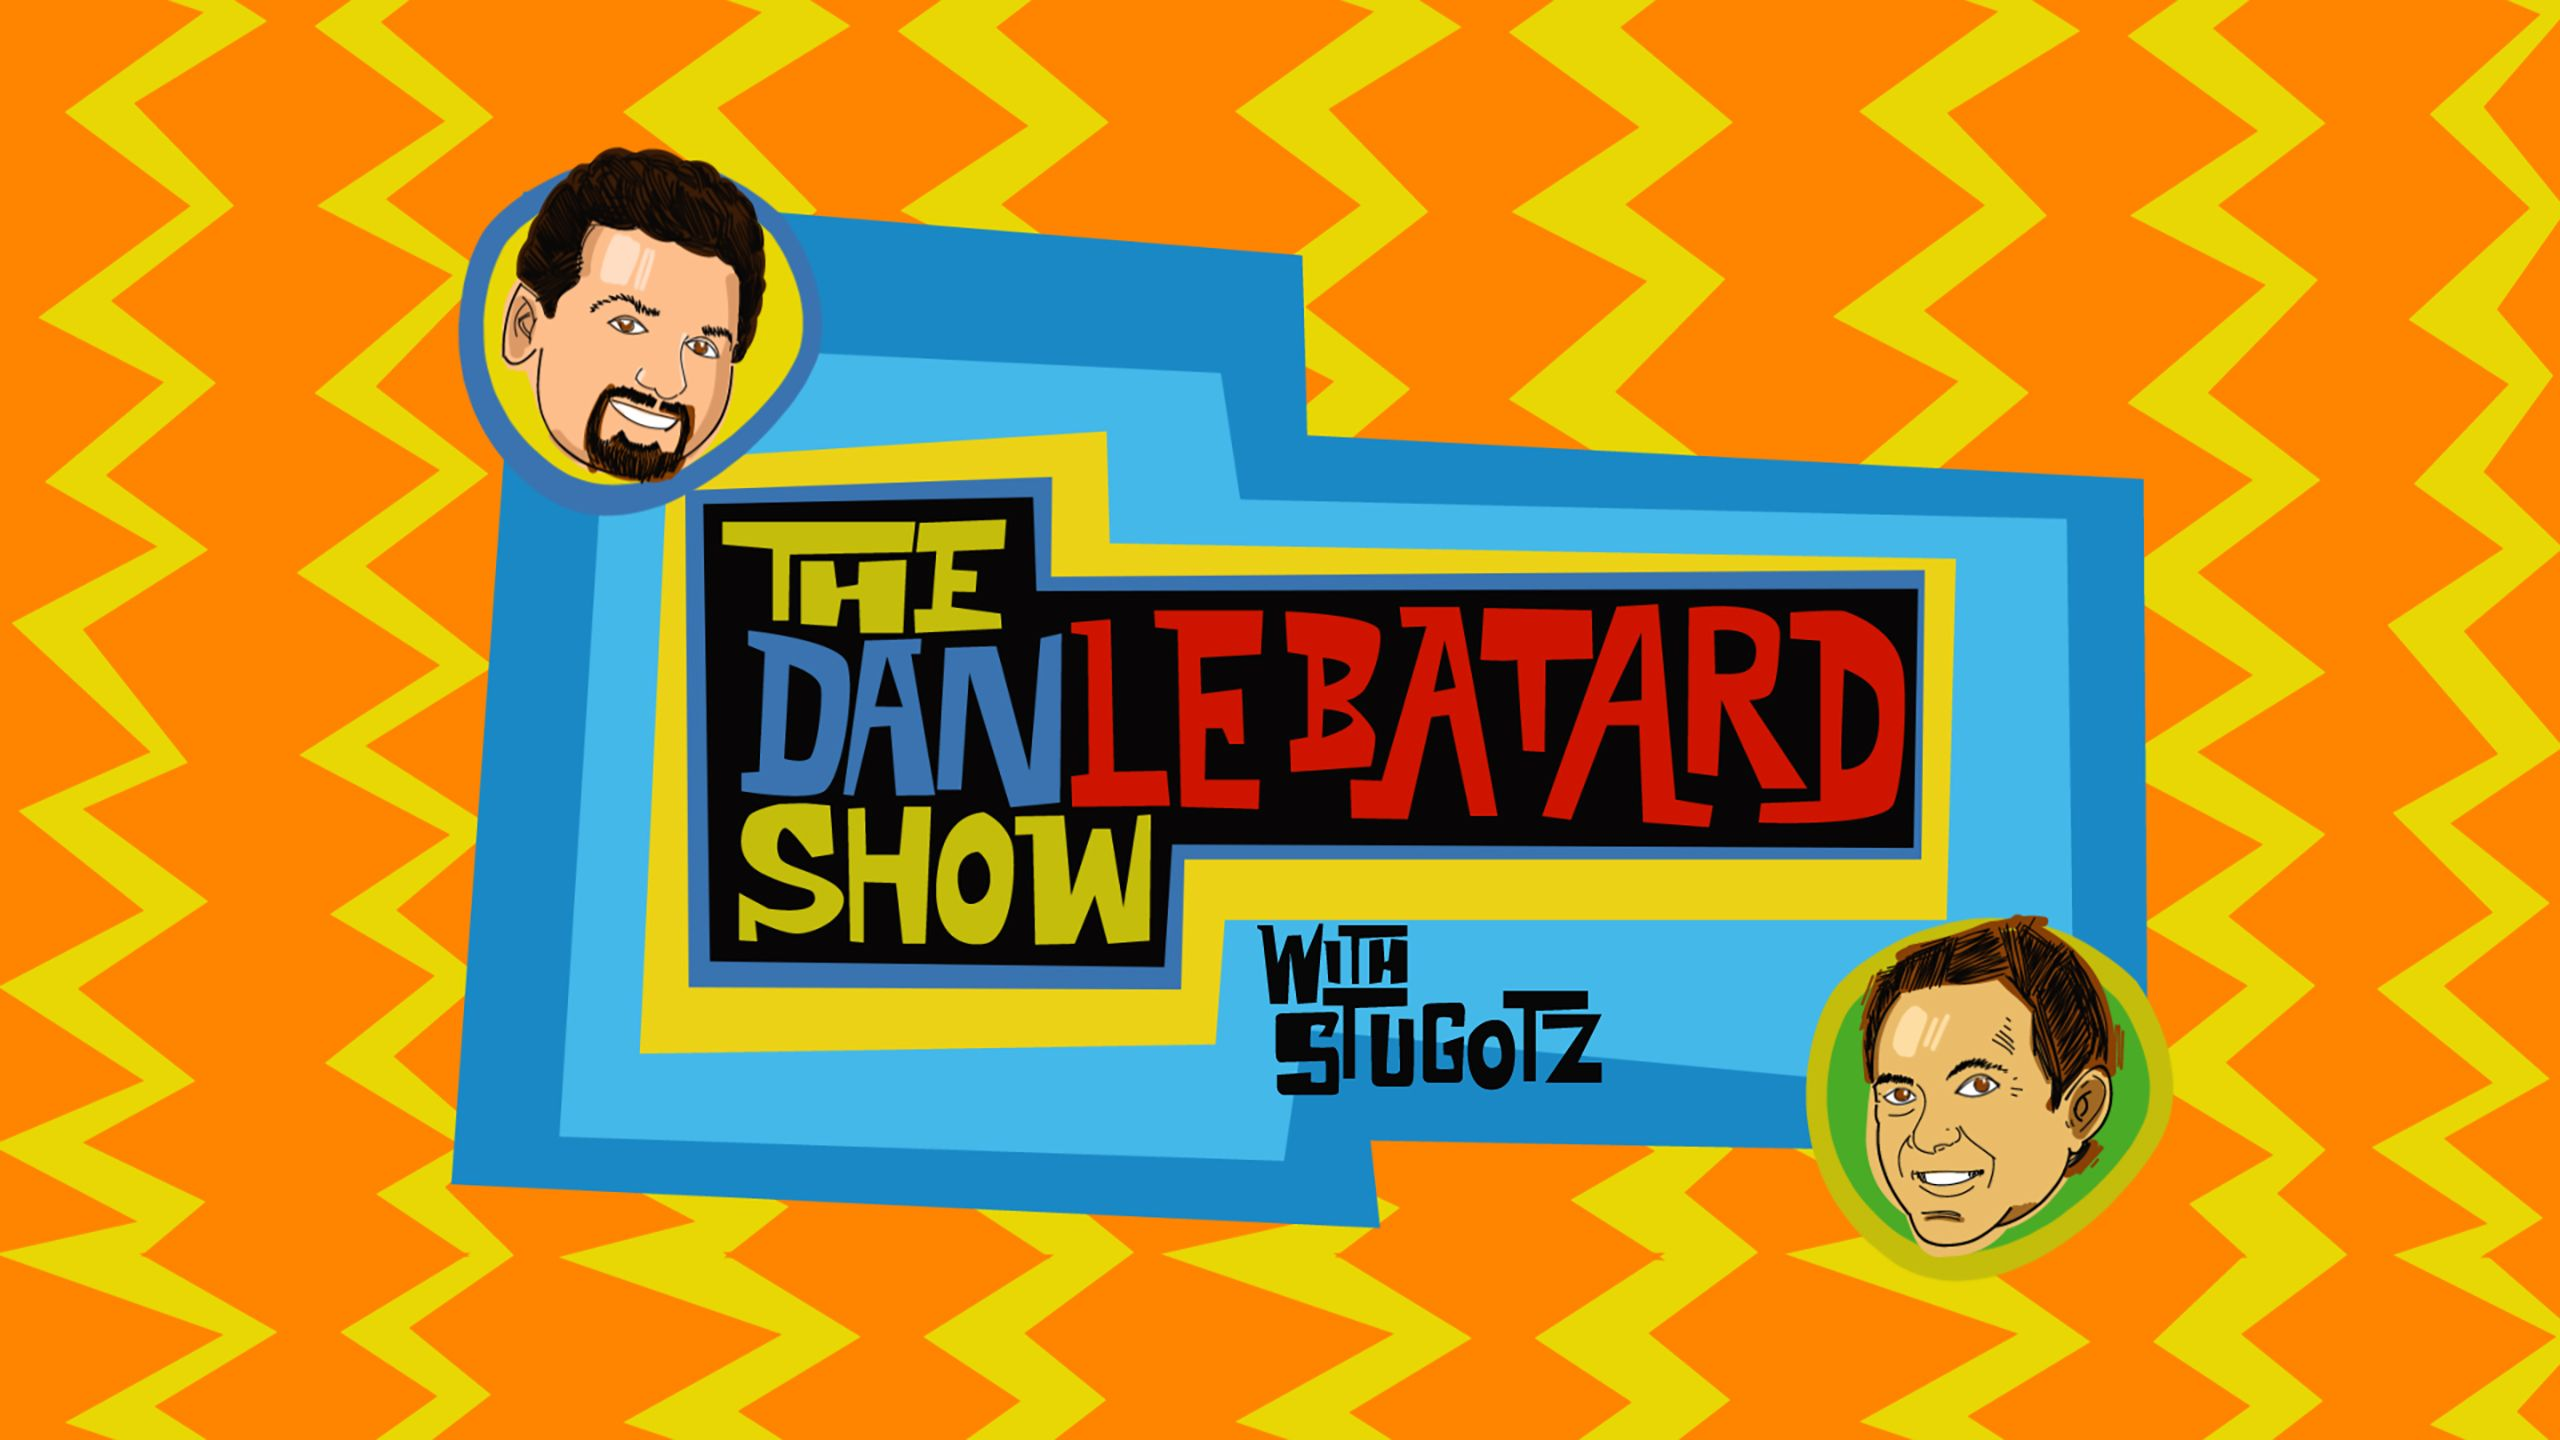 Mon, 7/16 - The Dan Le Batard Show with Stugotz Presented by Progressive